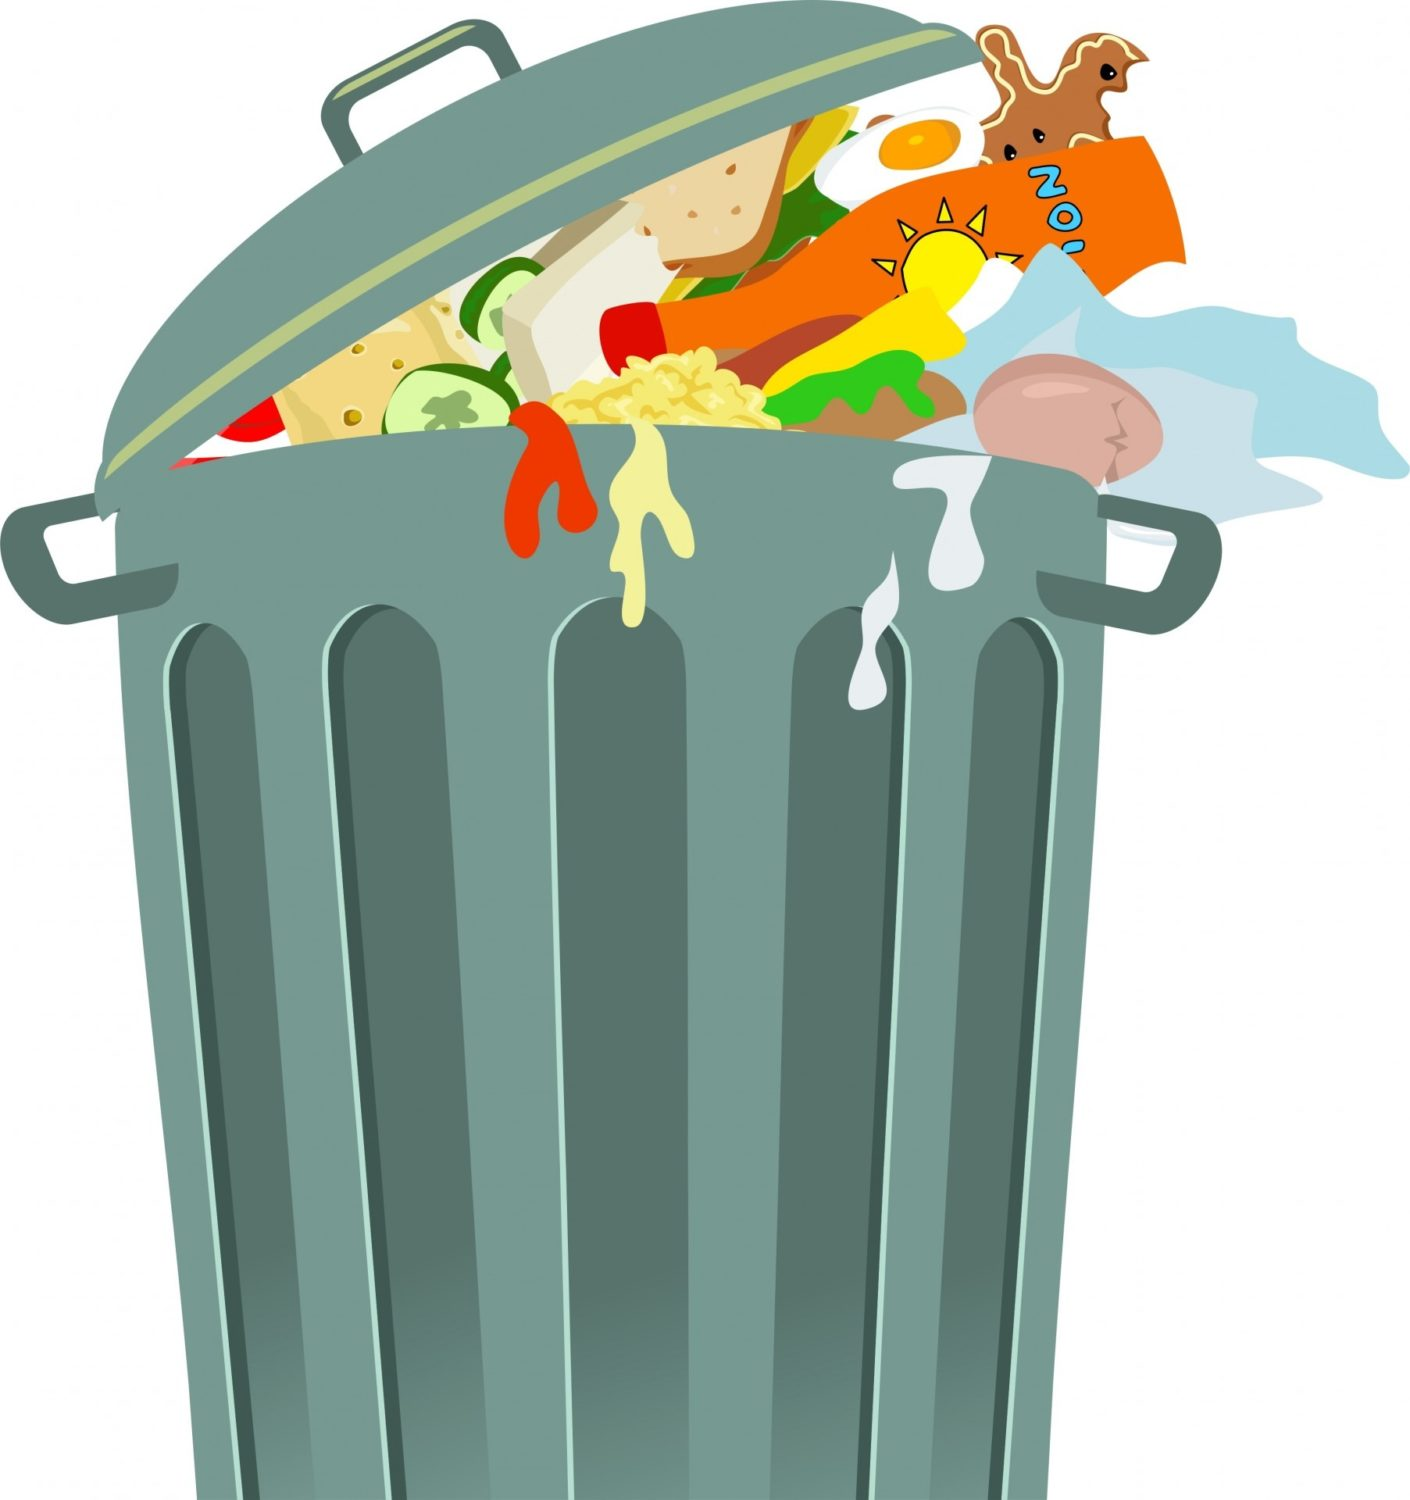 trash can clip art free stock photo public domain pictures within rh healthyjaime com free stock photos clipart royalty free stock clipart